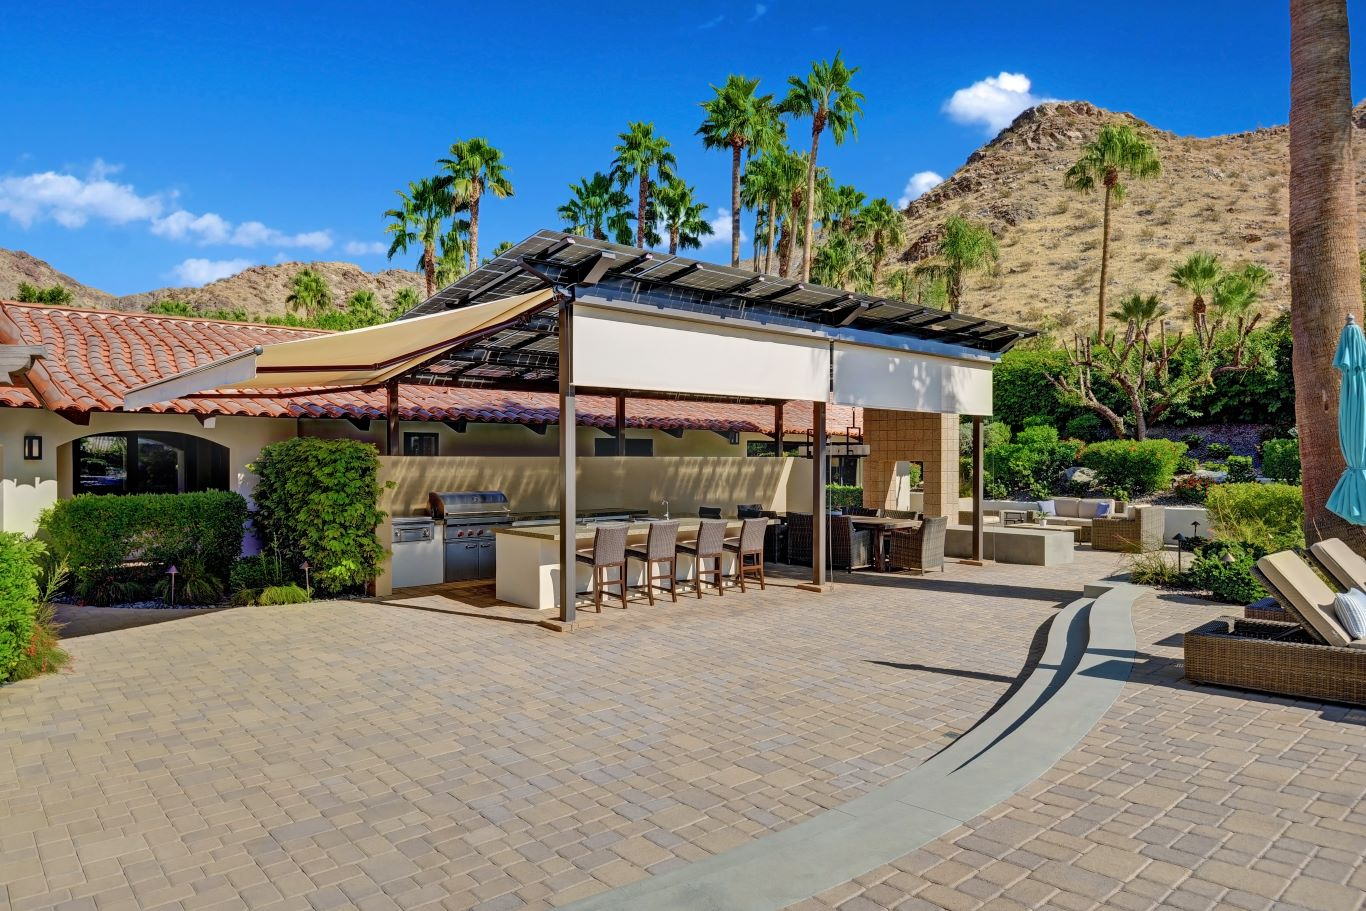 Outdoor Kitchen Shade Awnings